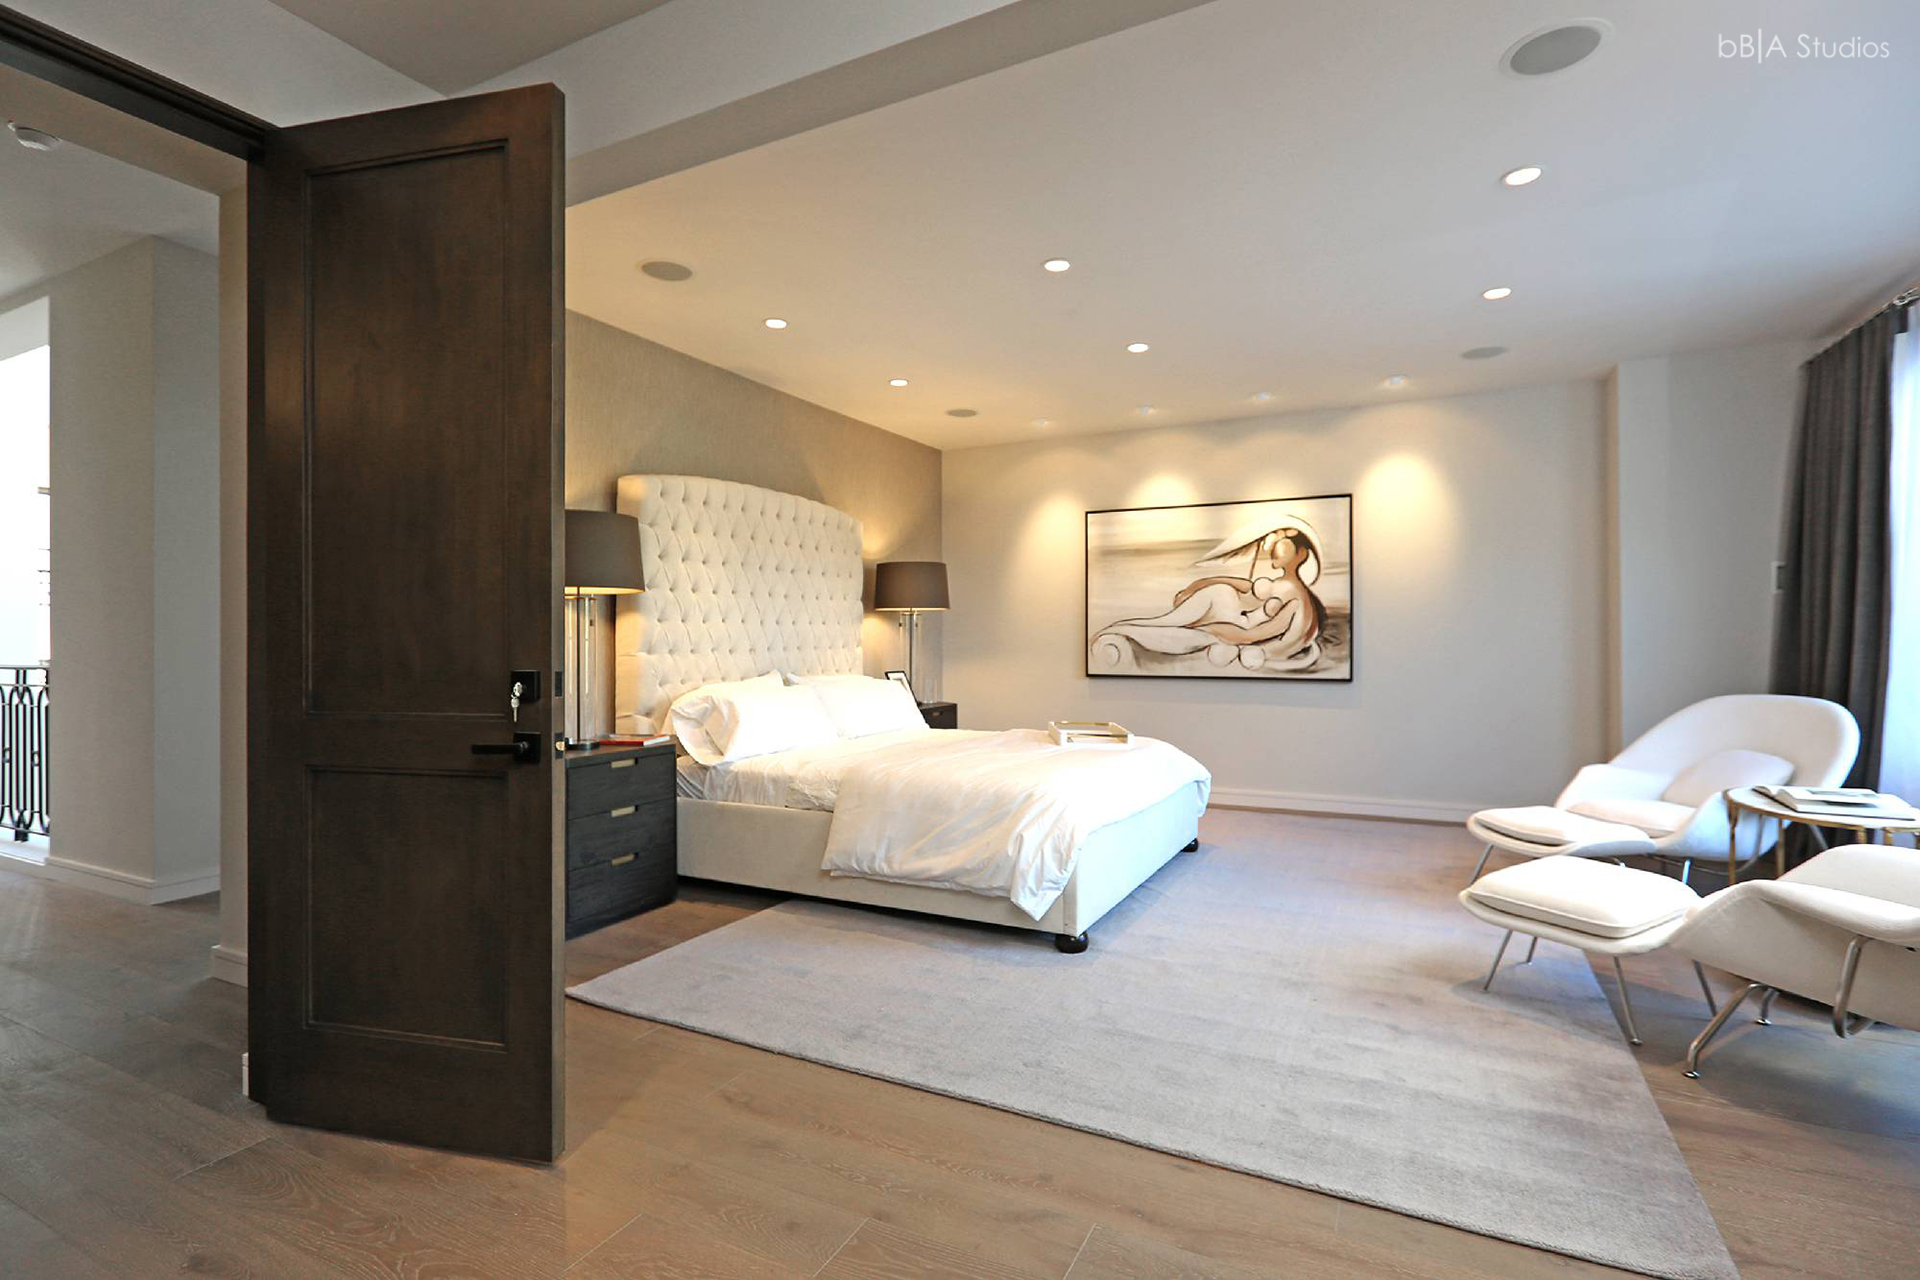 Master bedroom architecture